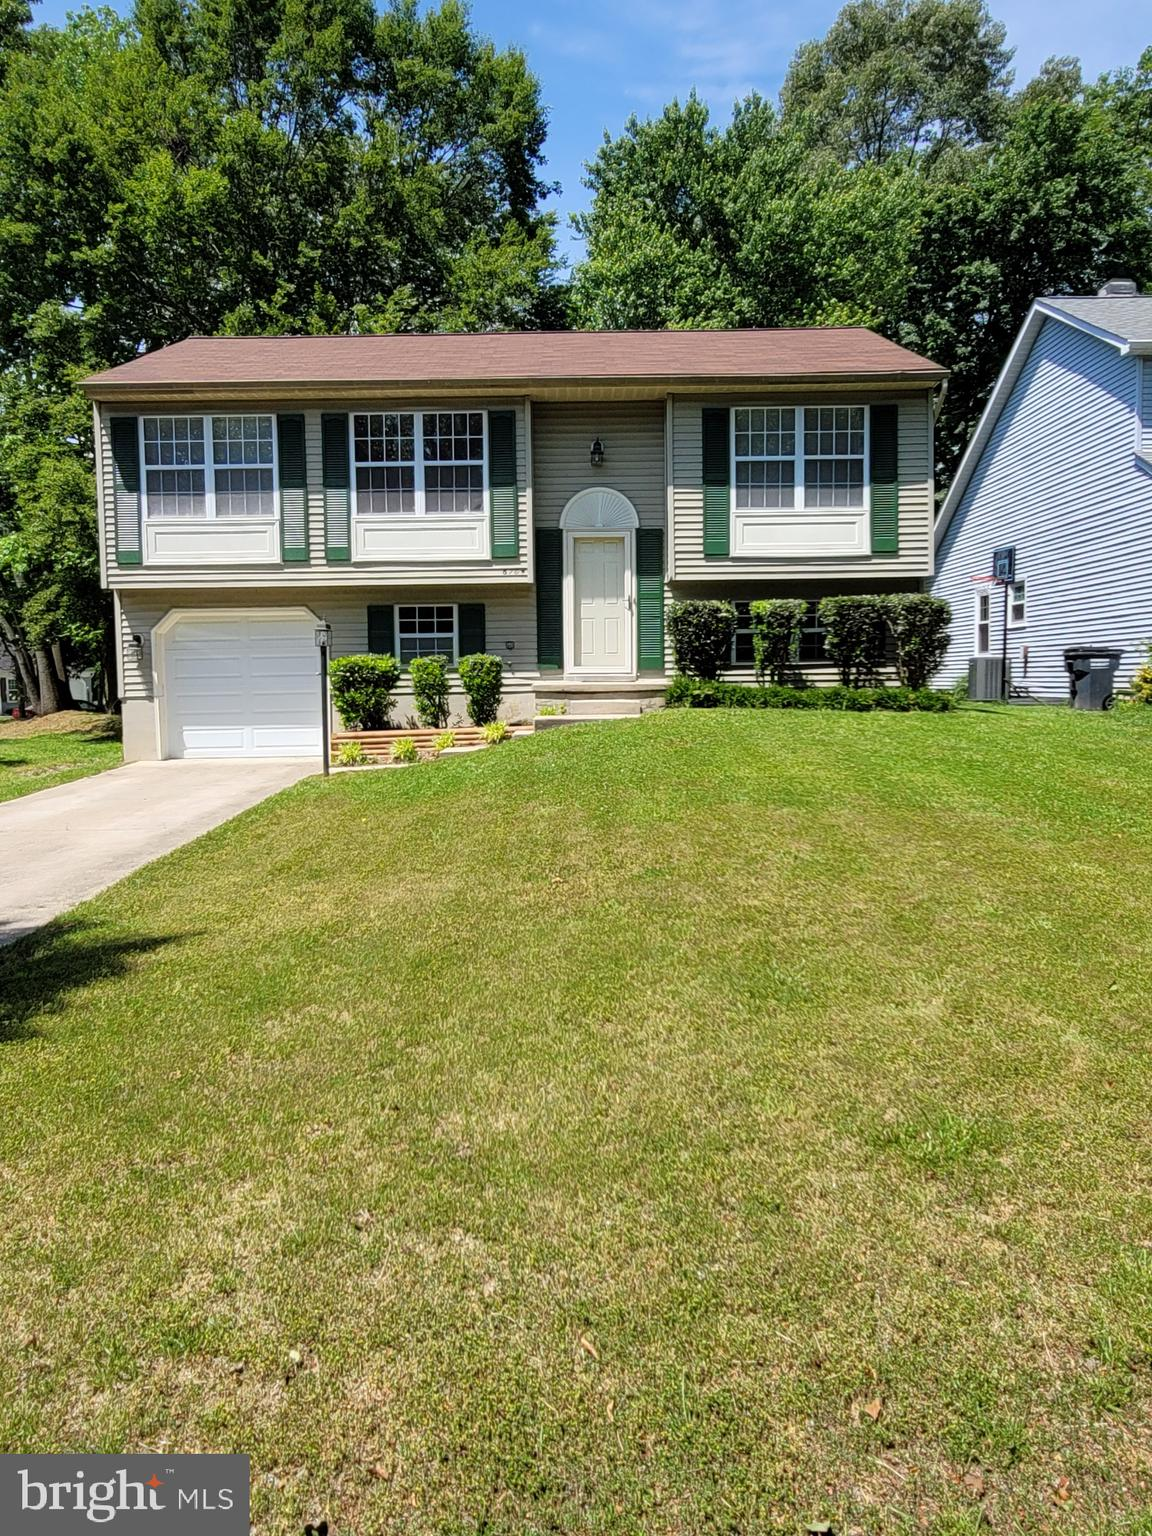 Great starter home or downsizing from the large 4+ bedroom mansion you no longer need.  Very clean a